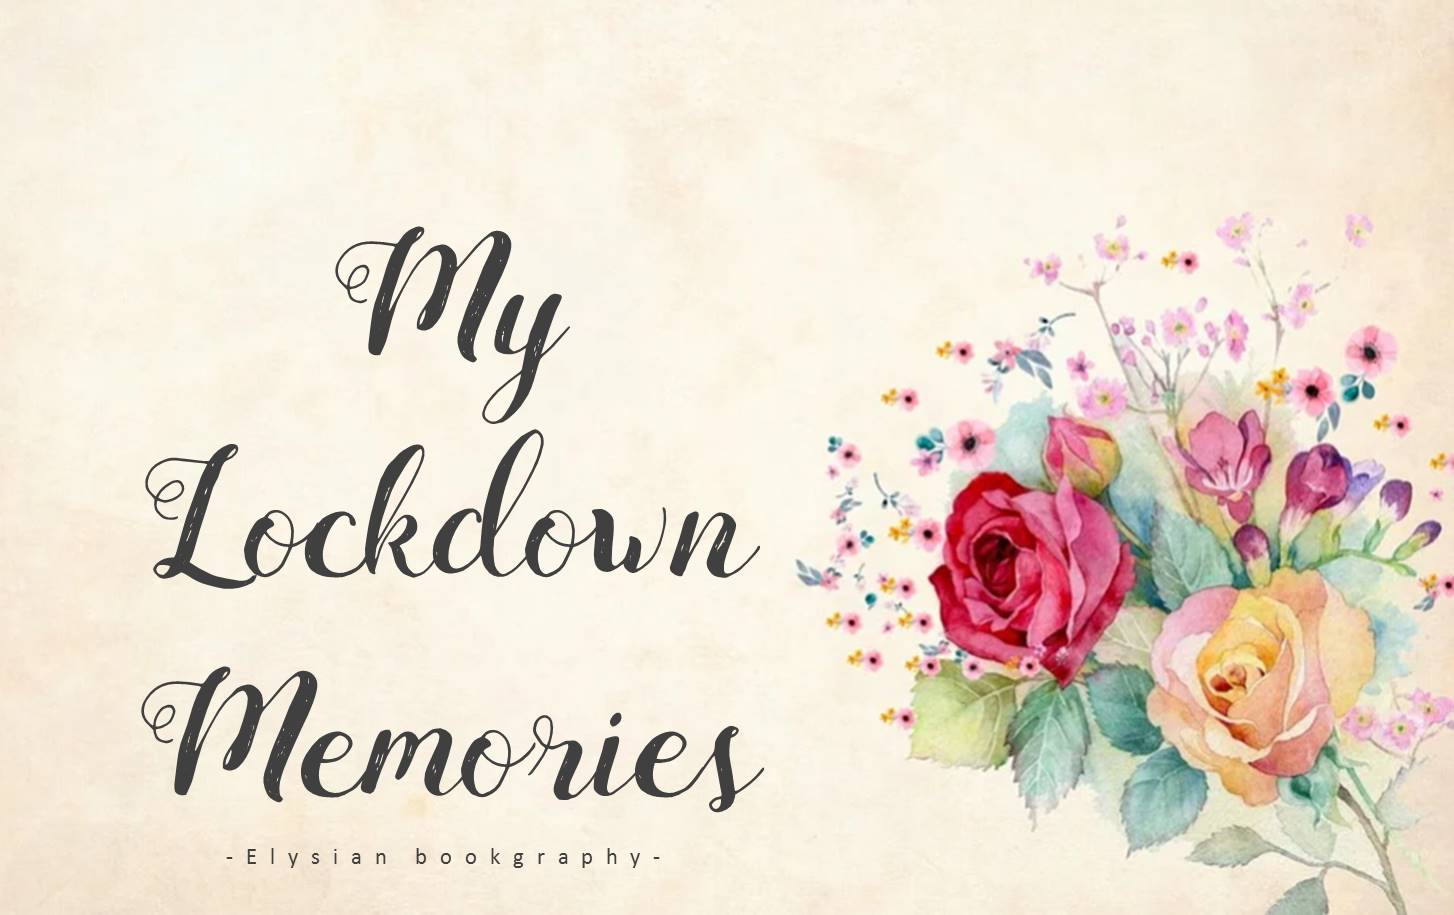 Cover pic of My Lockdown Memories by Elysian bookgraphy